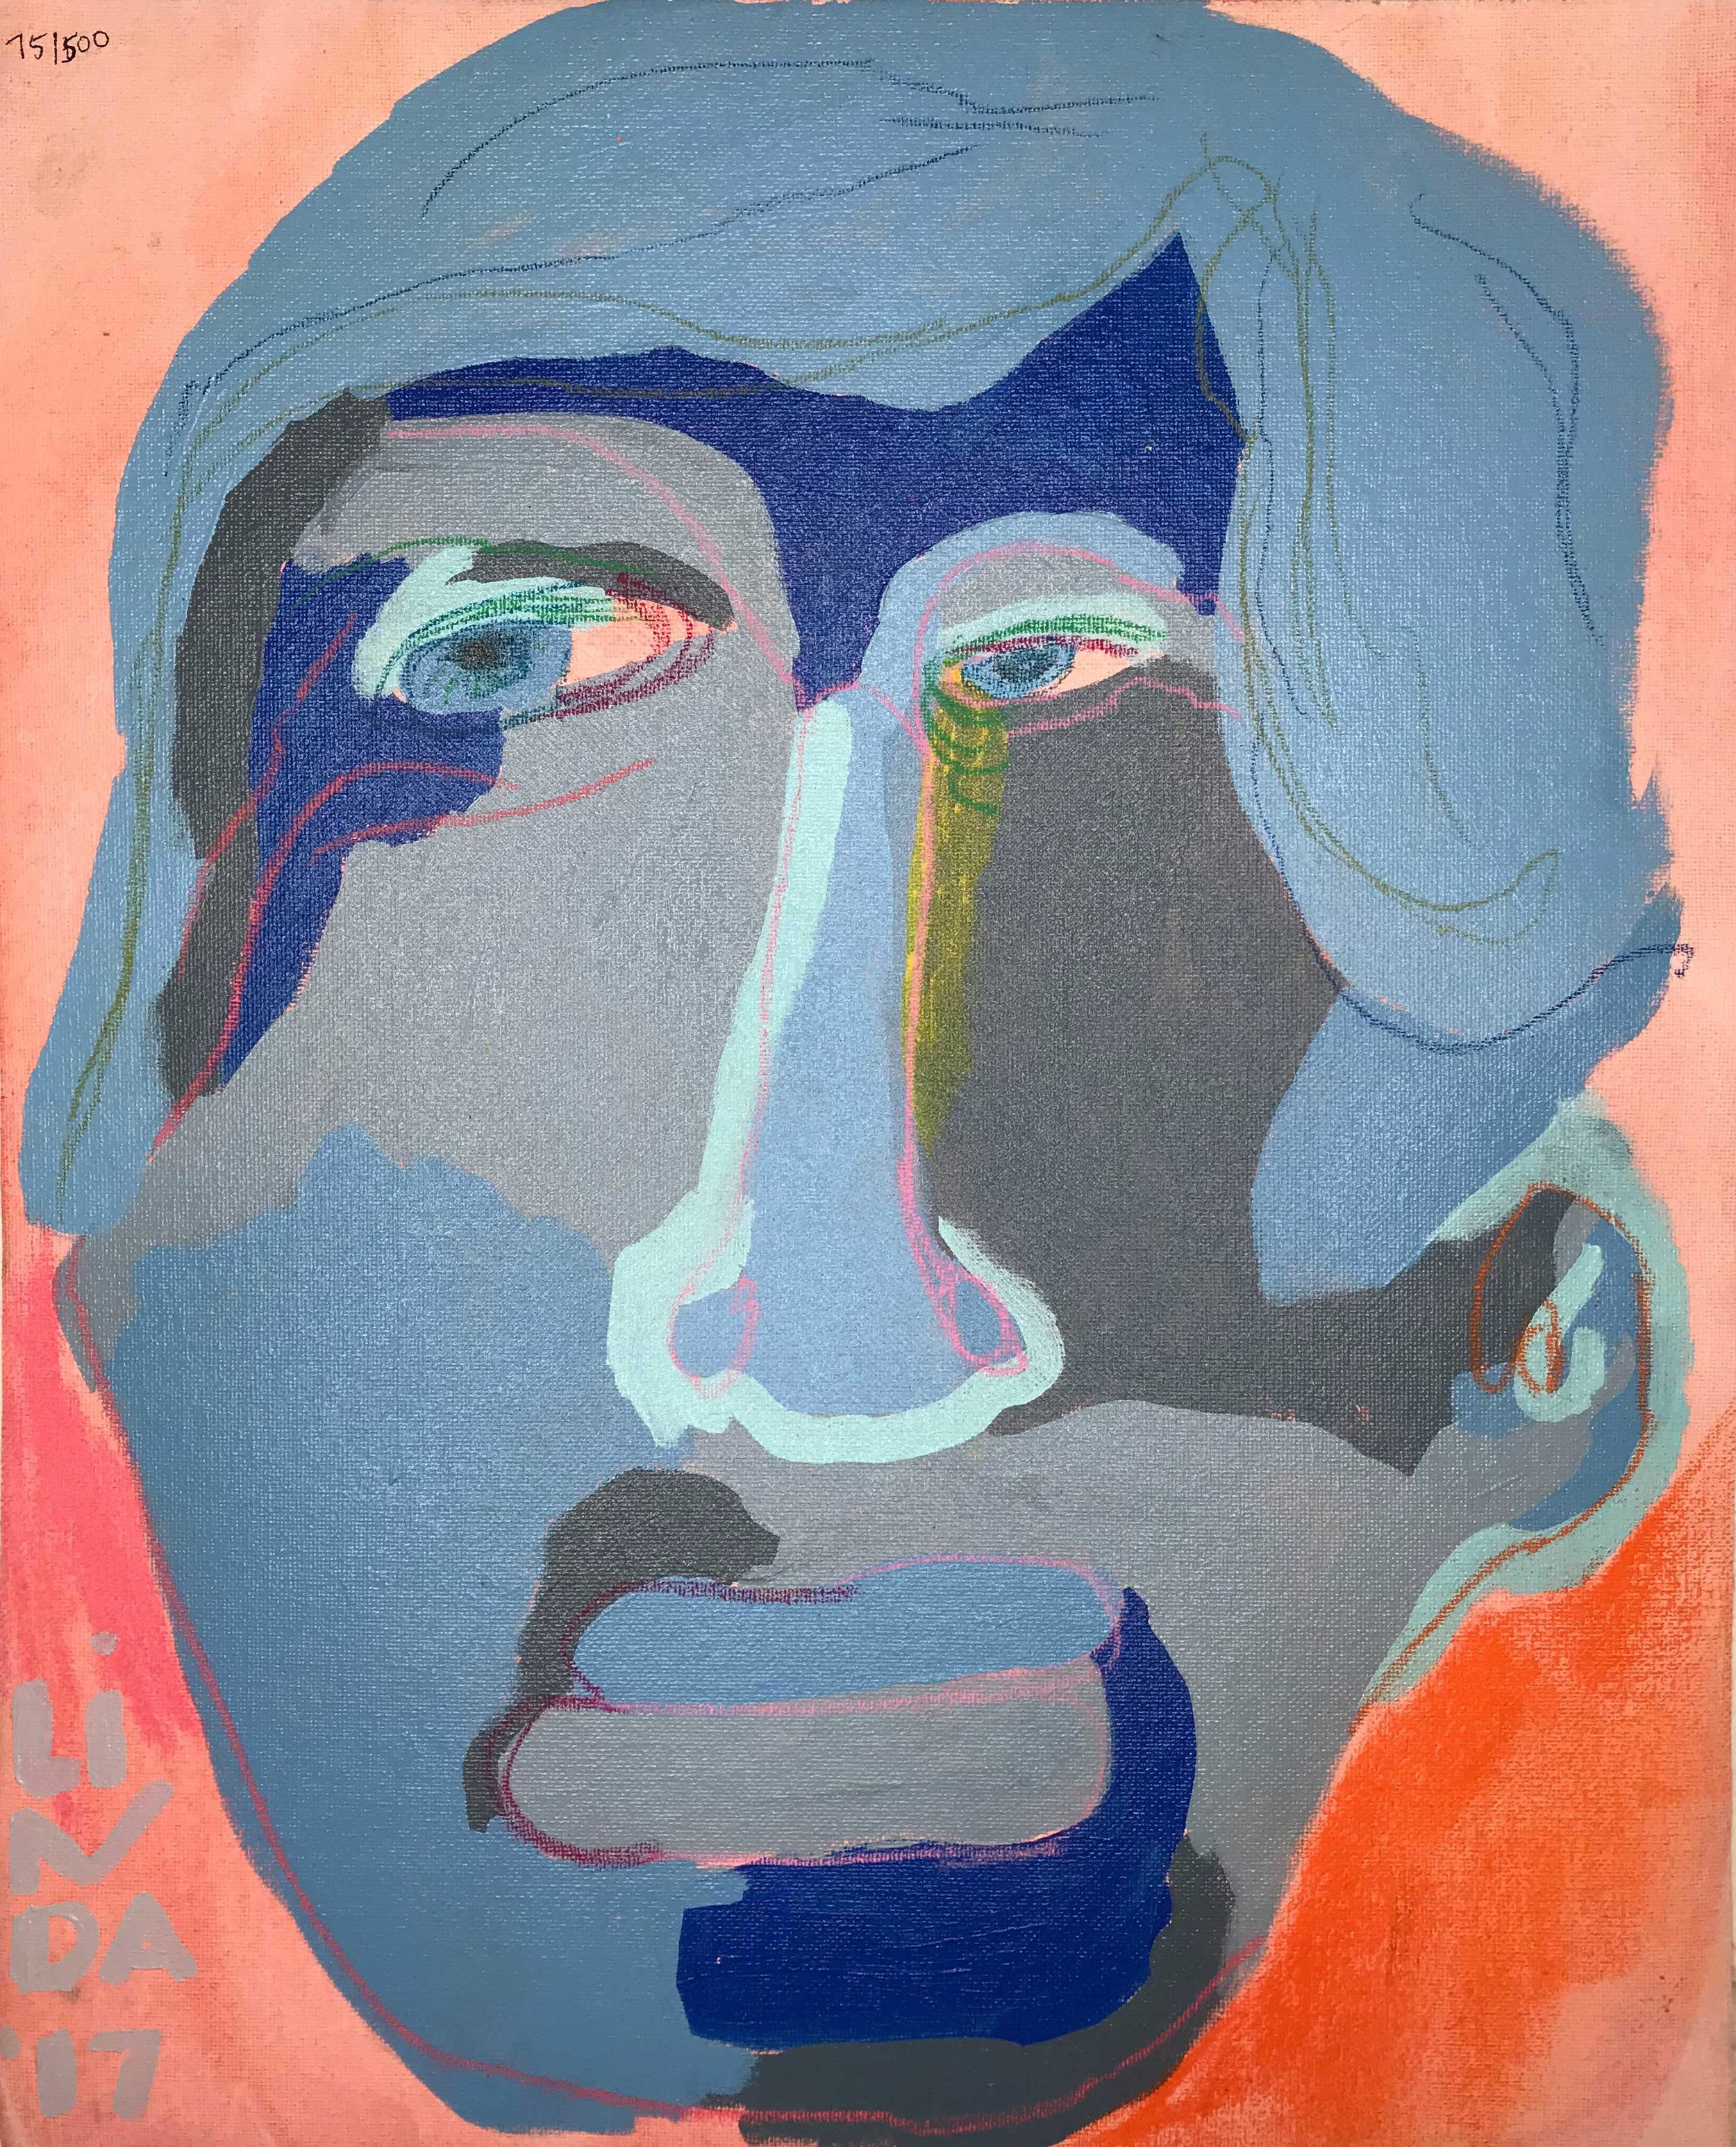 'is he ready' portrait painting - Chairish // $385